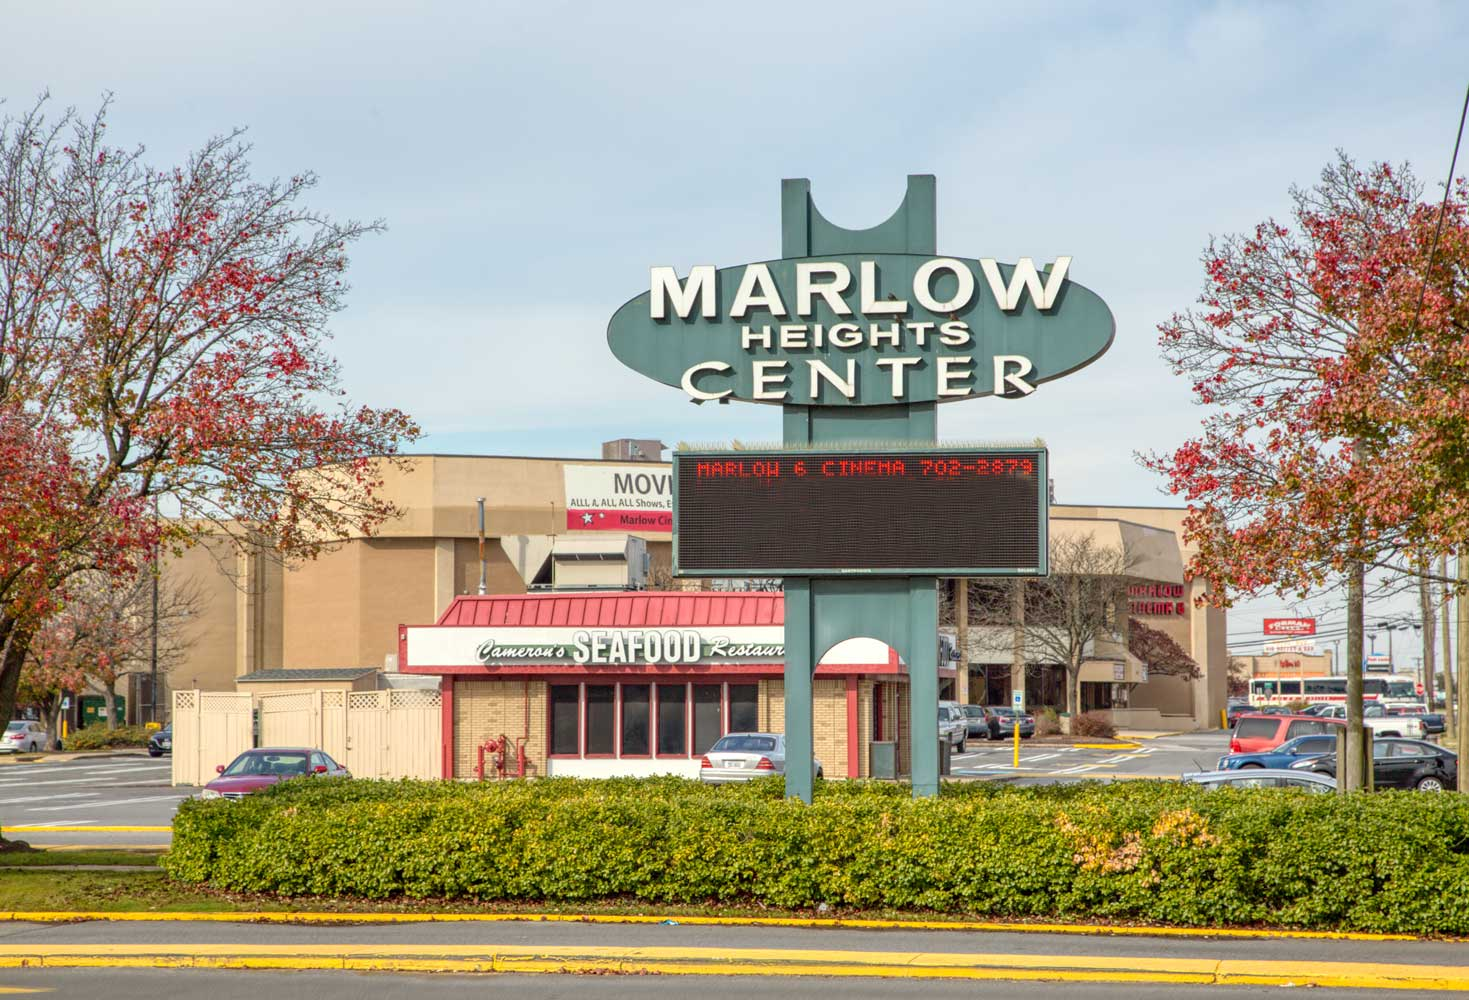 10 minutes to Marlow Heights Center